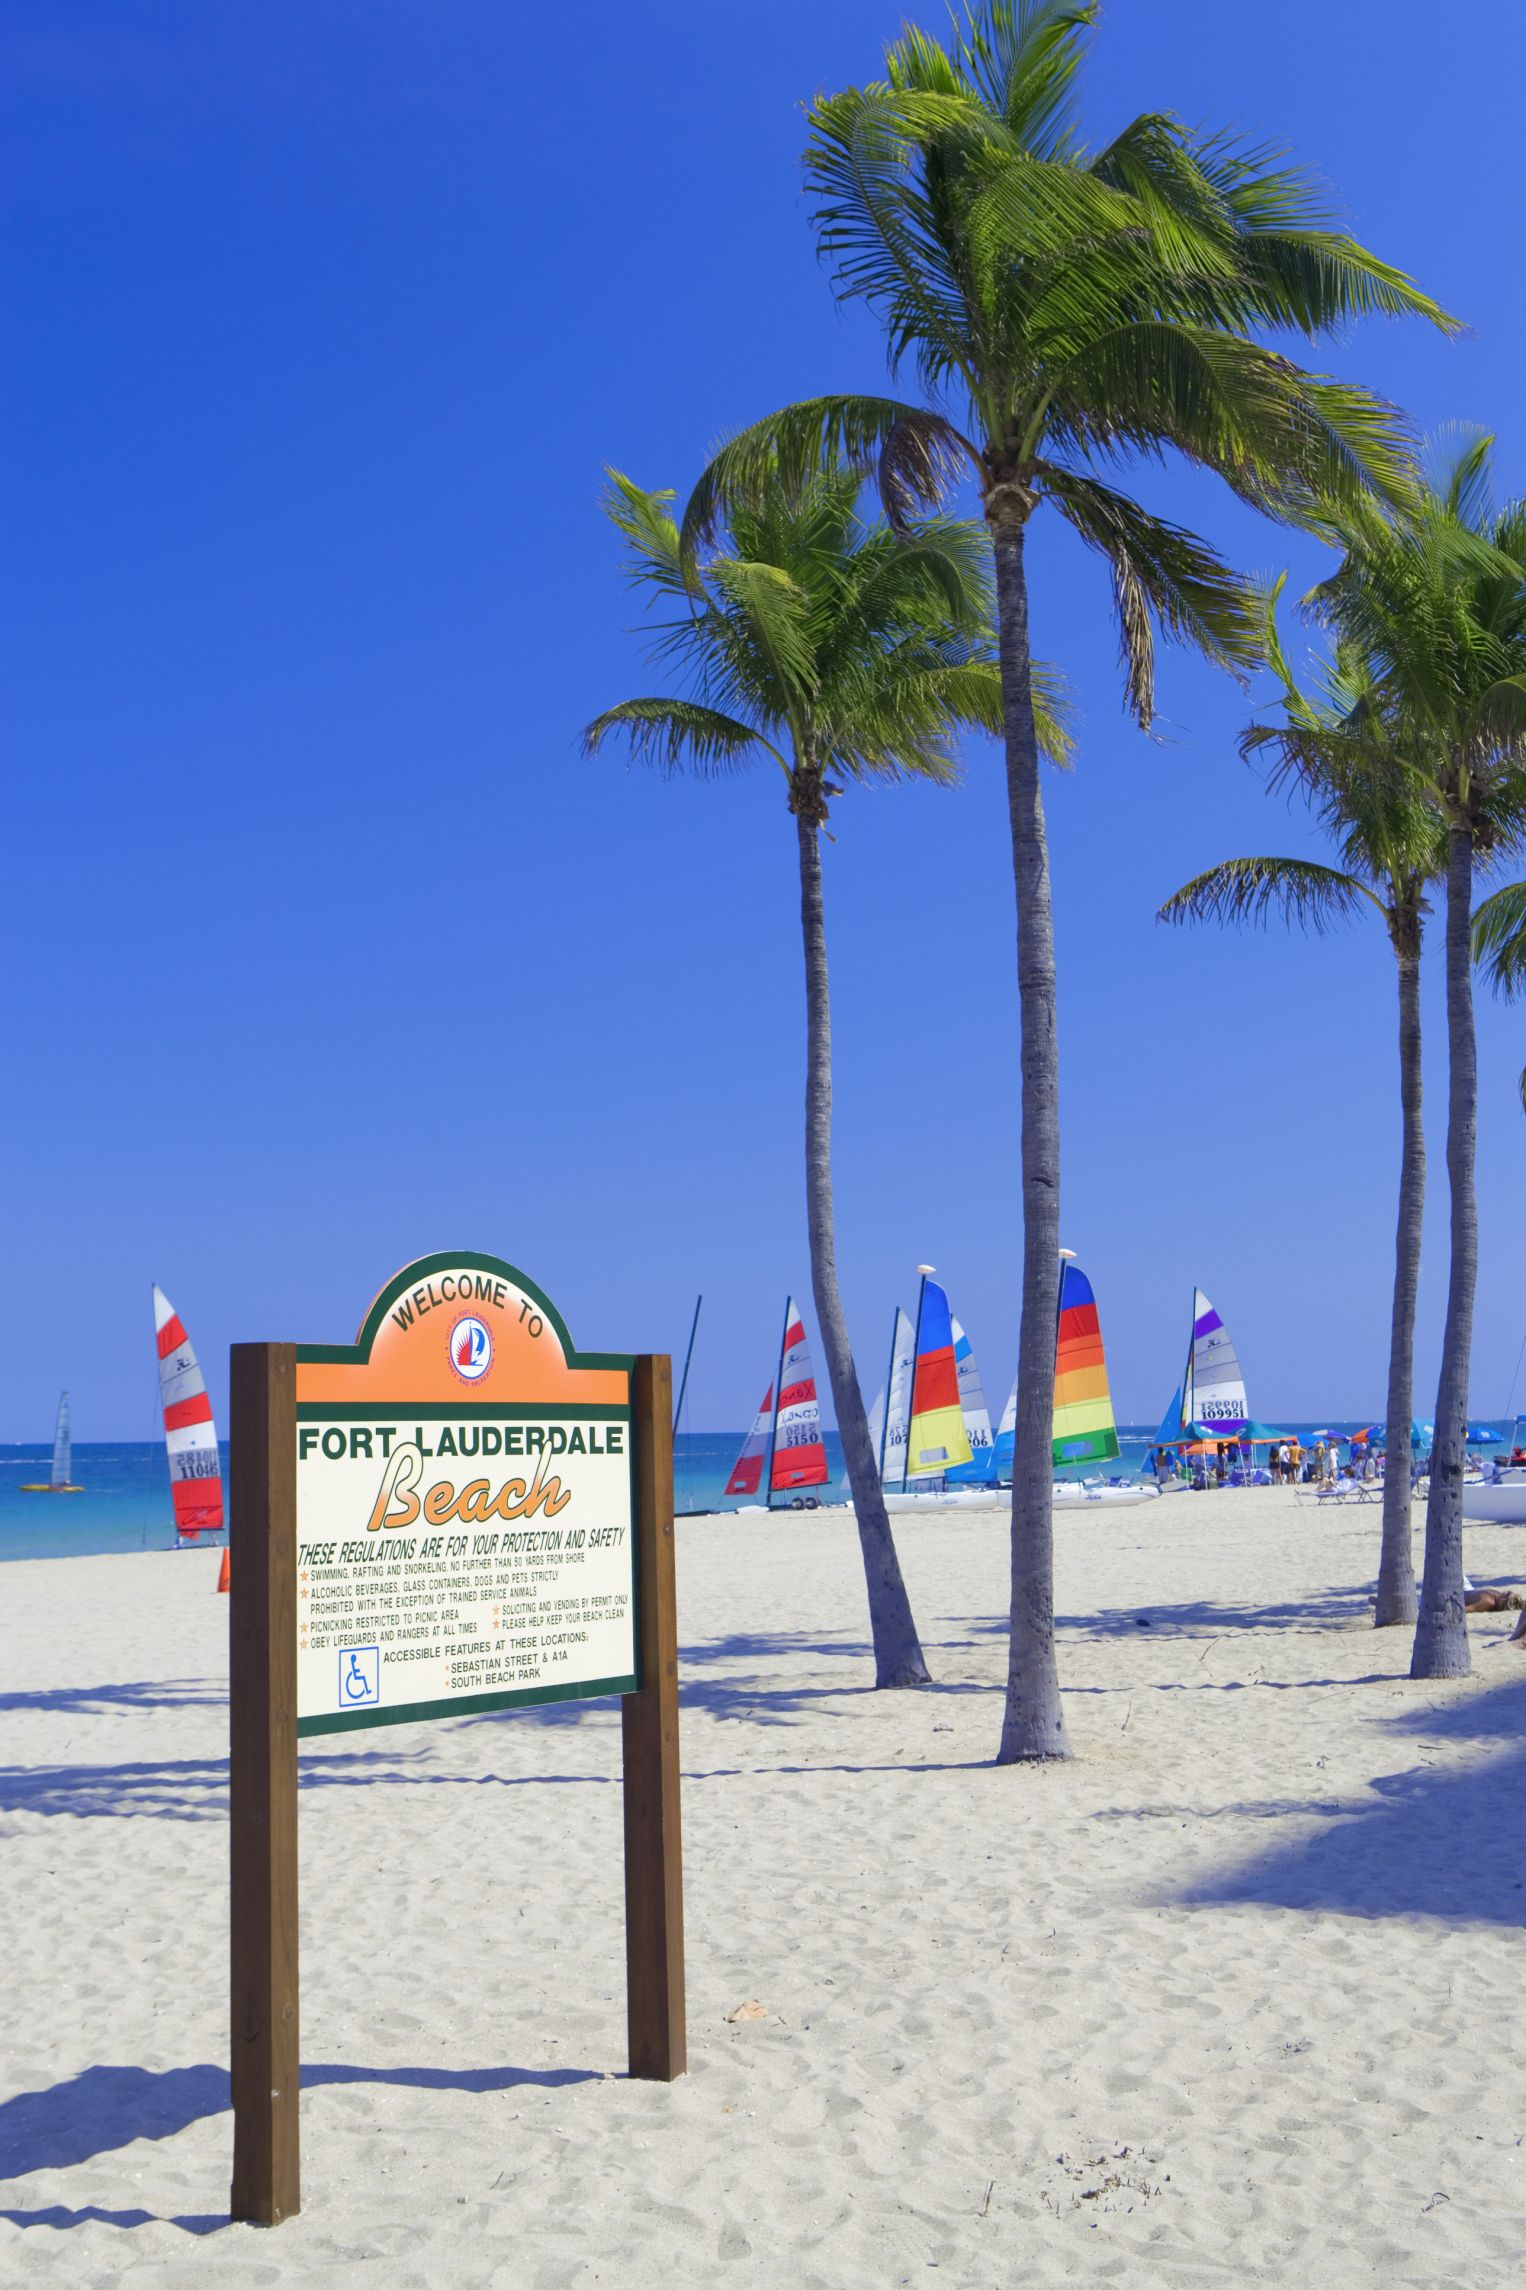 The Beaches Of Ft Lauderdale Are Beckoning Book Your Beach Vacation To Florida Now On Expedia Com Fort Lauderdale Beach Lauderdale Fort Lauderdale Florida